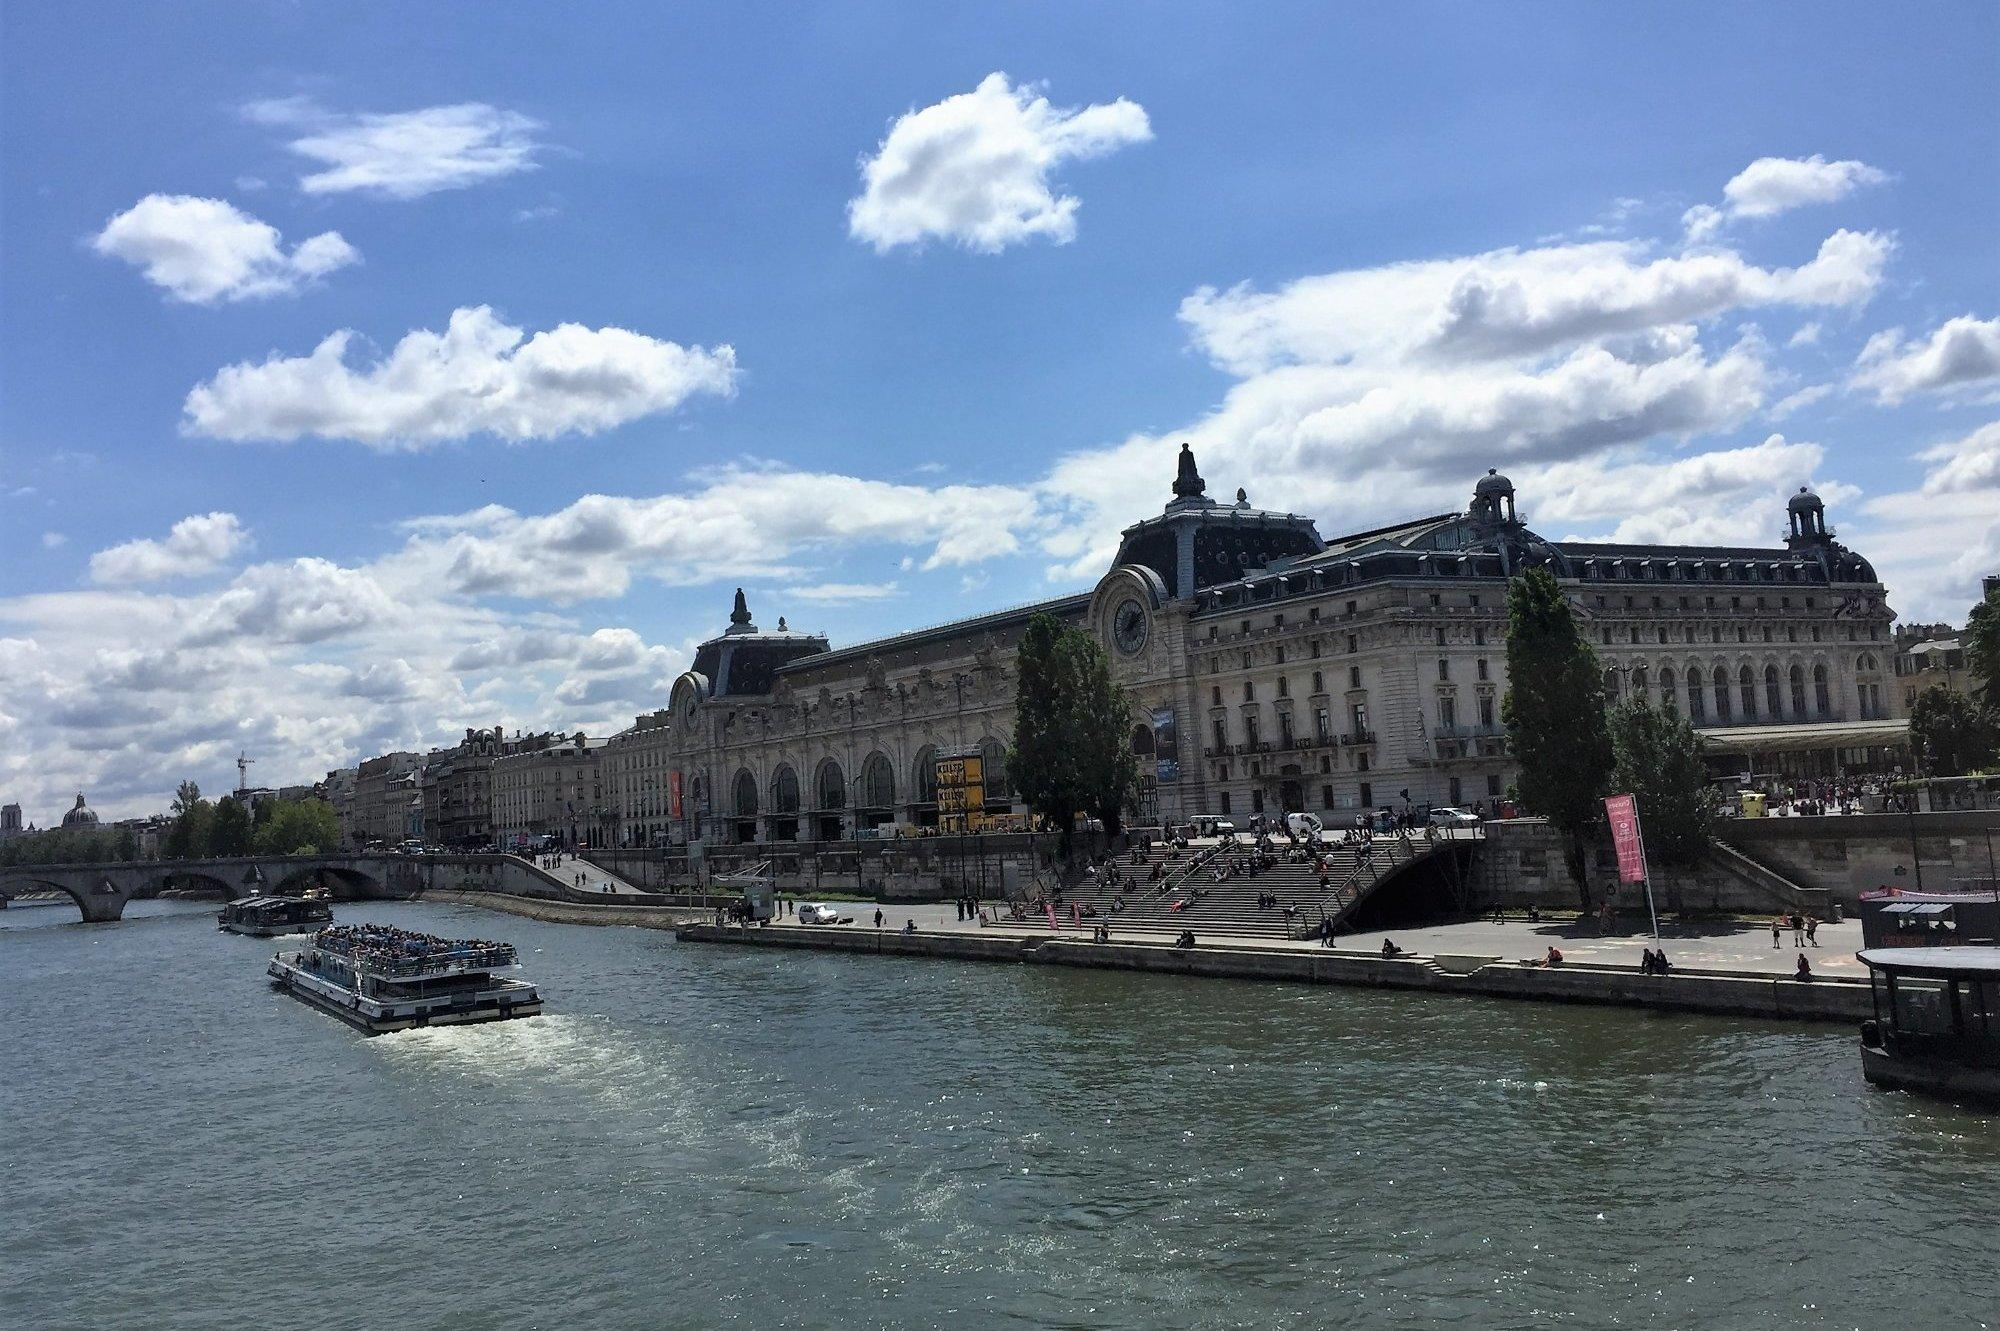 """The Musée d'Orsay has a vast collection of French art and was first established in 1986. The museum is housed in the former railway station, Gare d'Orsay, and exhibits masterpieces from Money, Degas and Van Gogh among others. Visit<a href=""""http://www.musee-orsay.fr/en/home.html"""" target=""""_blank"""">musee-orsay.fr</a> for more information."""